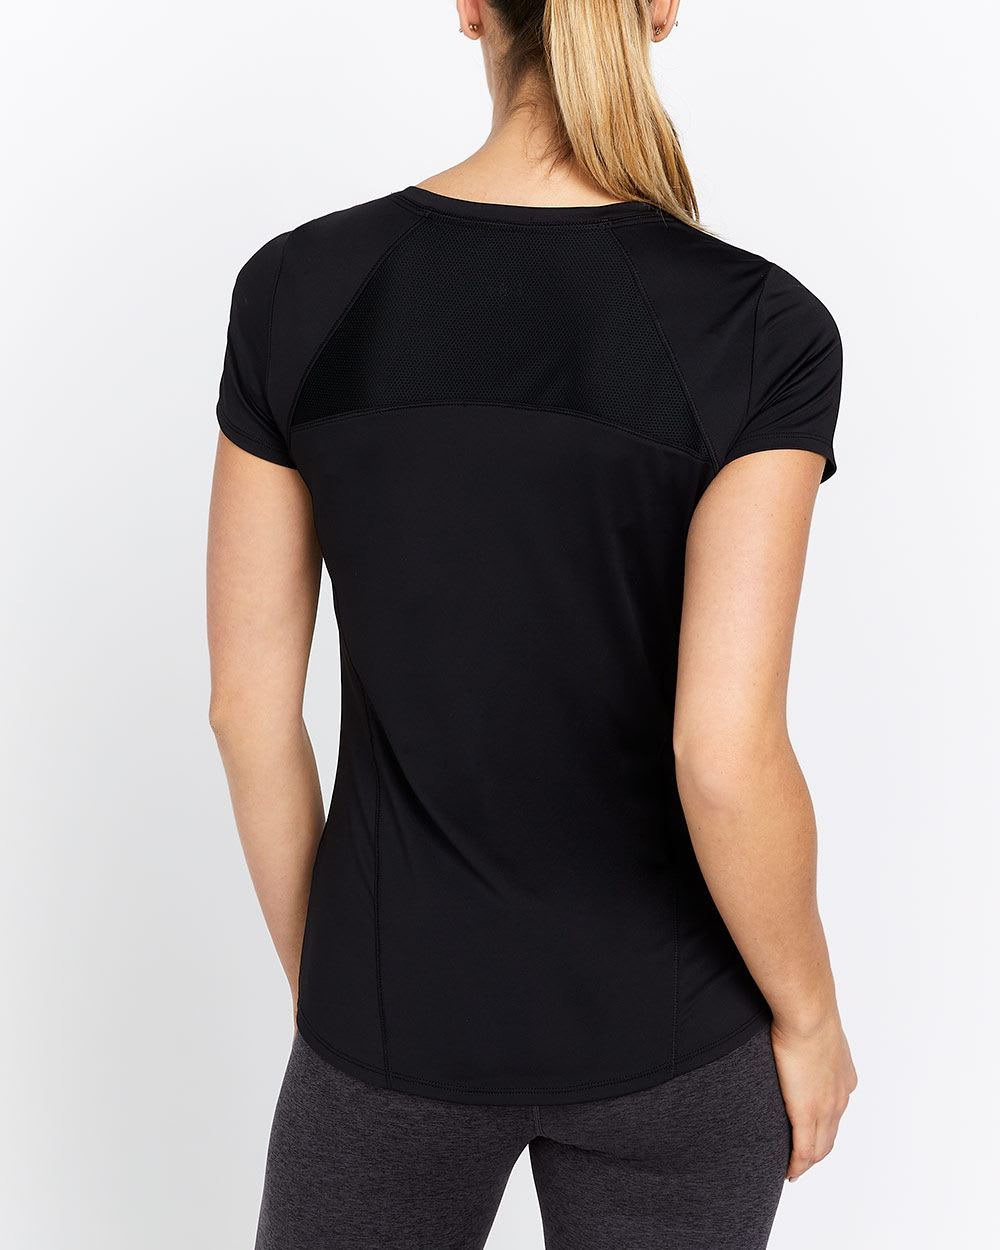 Hyba Essential Mesh T-Shirt